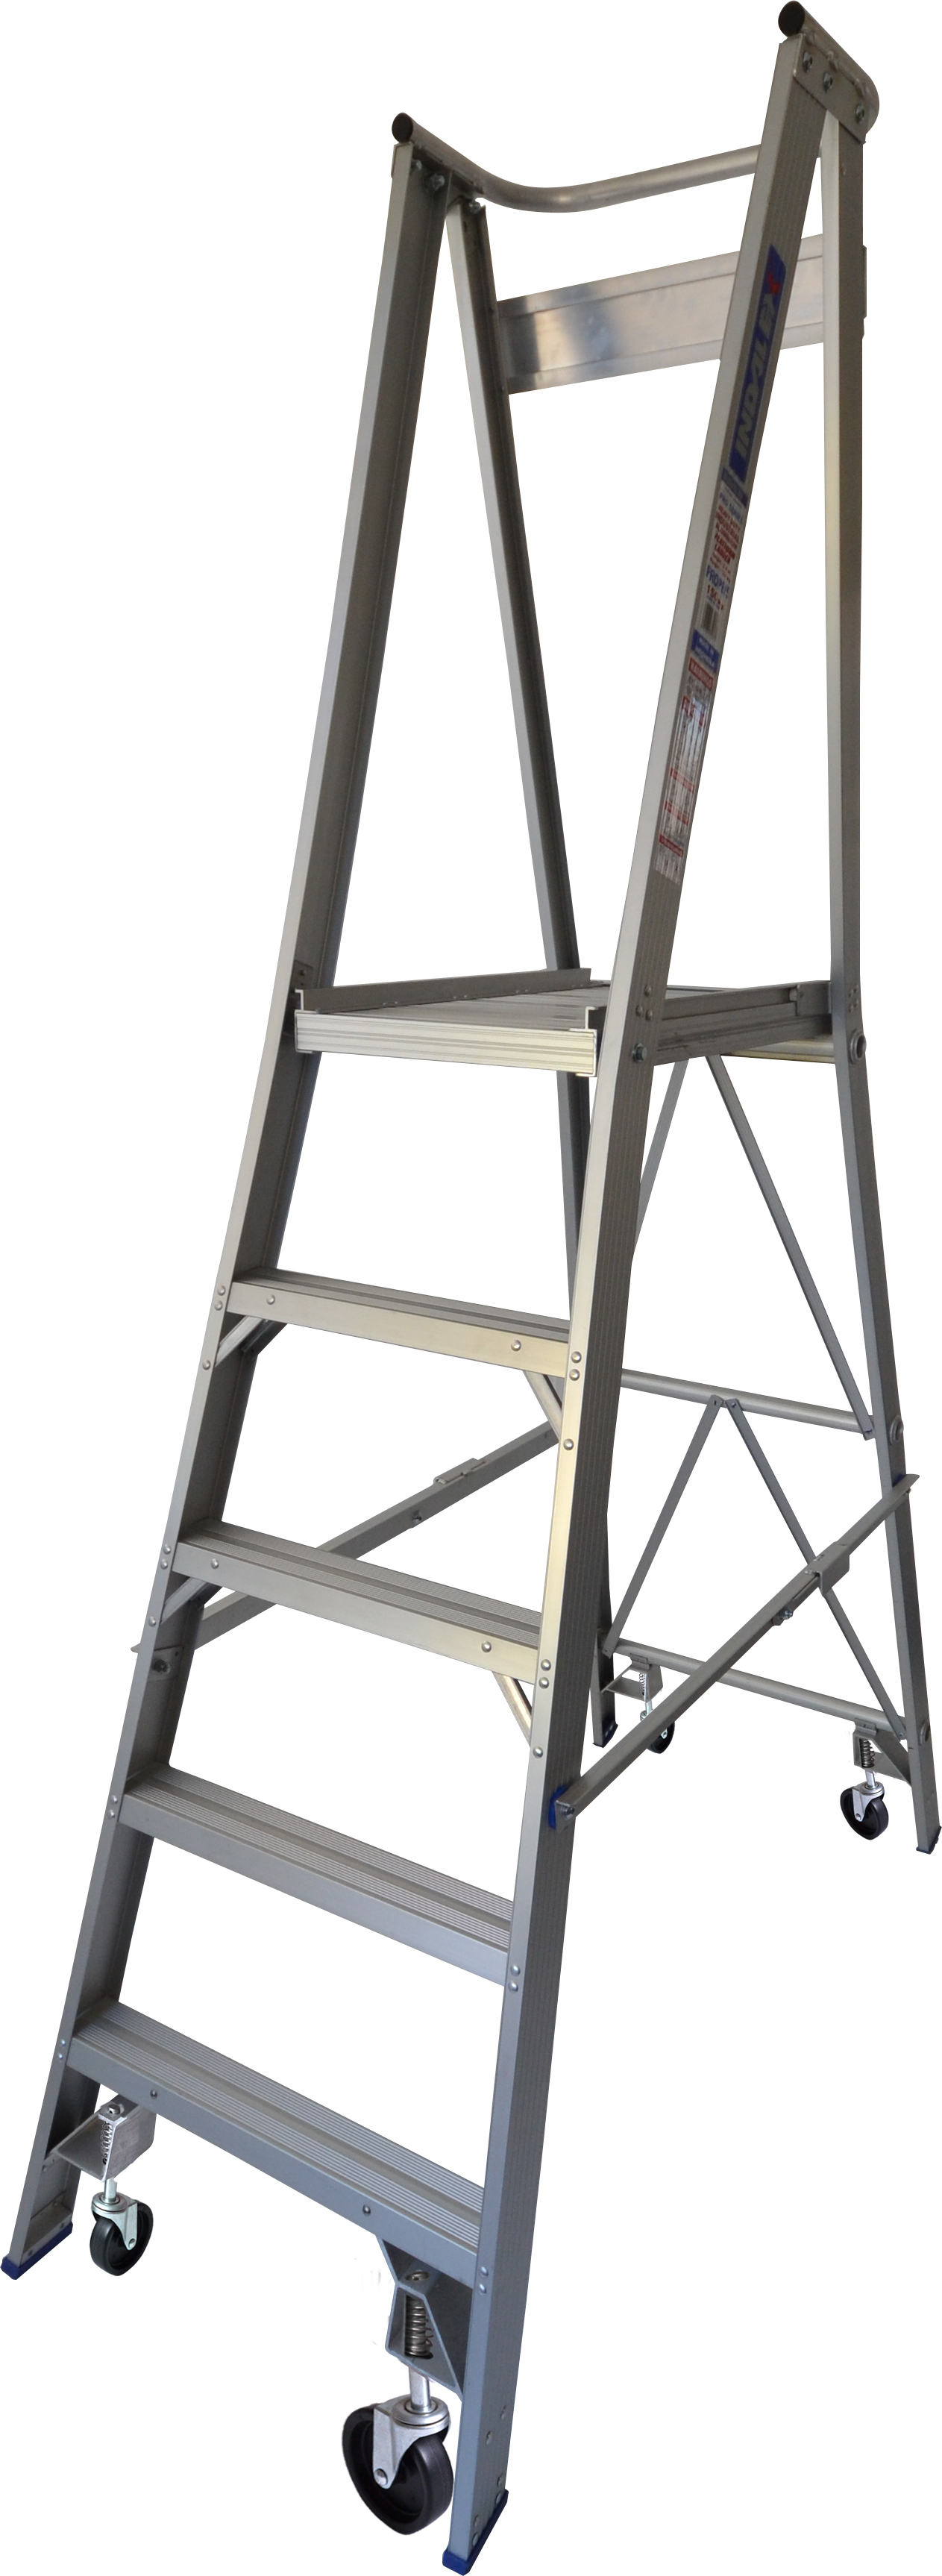 Our 5 step aluminium platform ladders have 150kg capacity, 1.5M platform height & 2.4M total height. It's constructed using high tensile structural aluminium alloy, solid 90cm high guard rail, anti slip work platform & moulded feet for added safety.